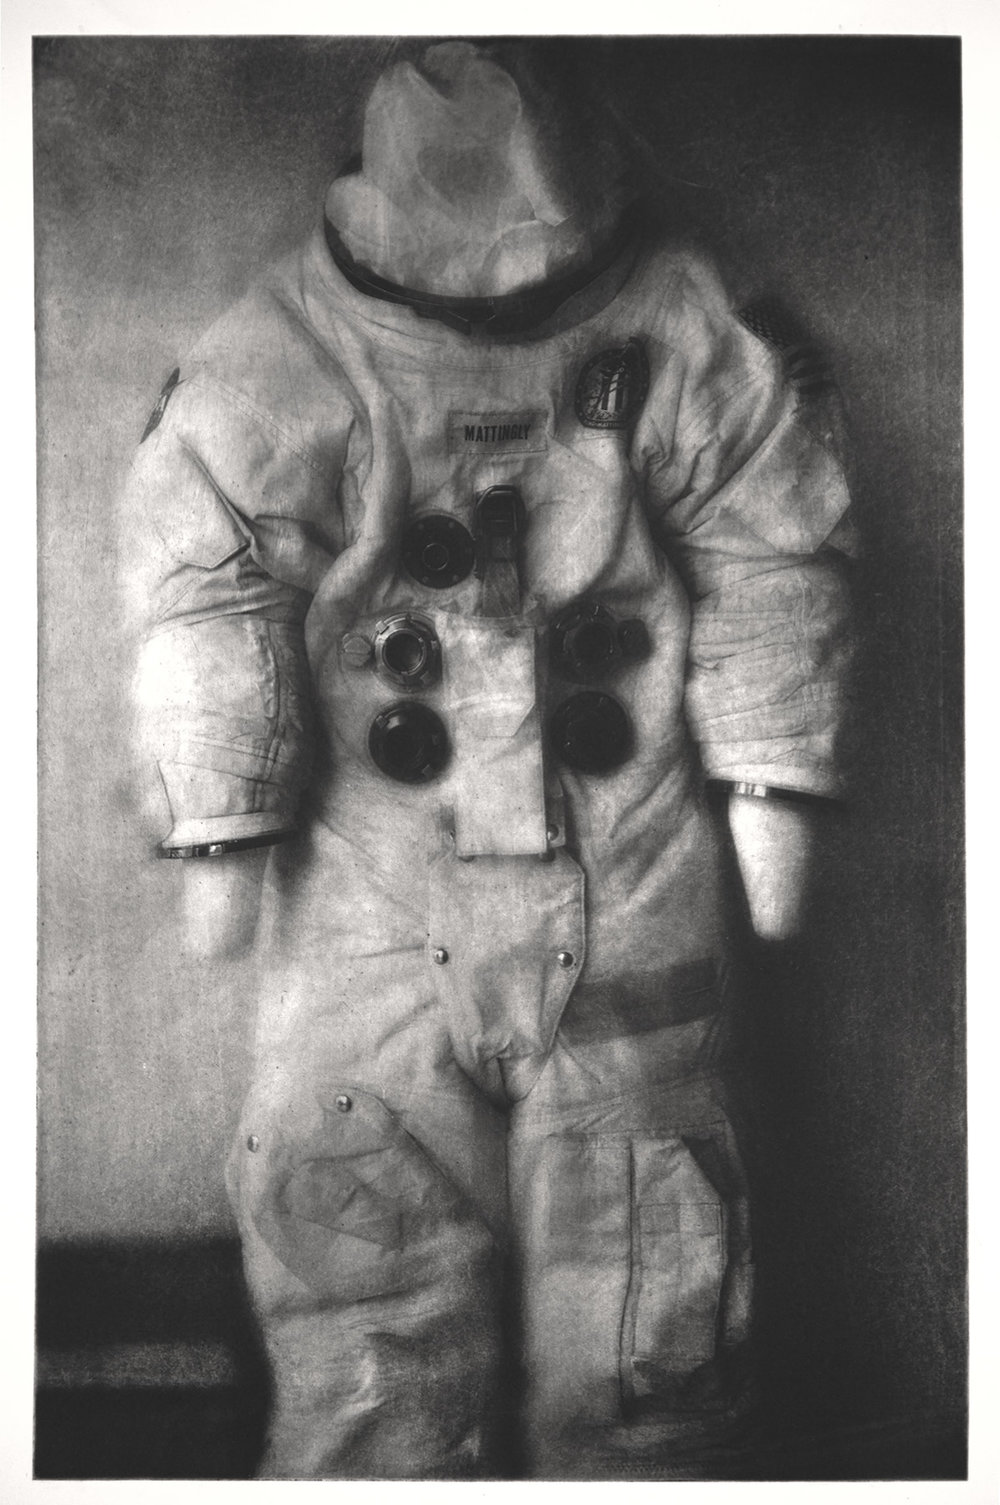 Ken Mattingly's Apollo XIII Suit